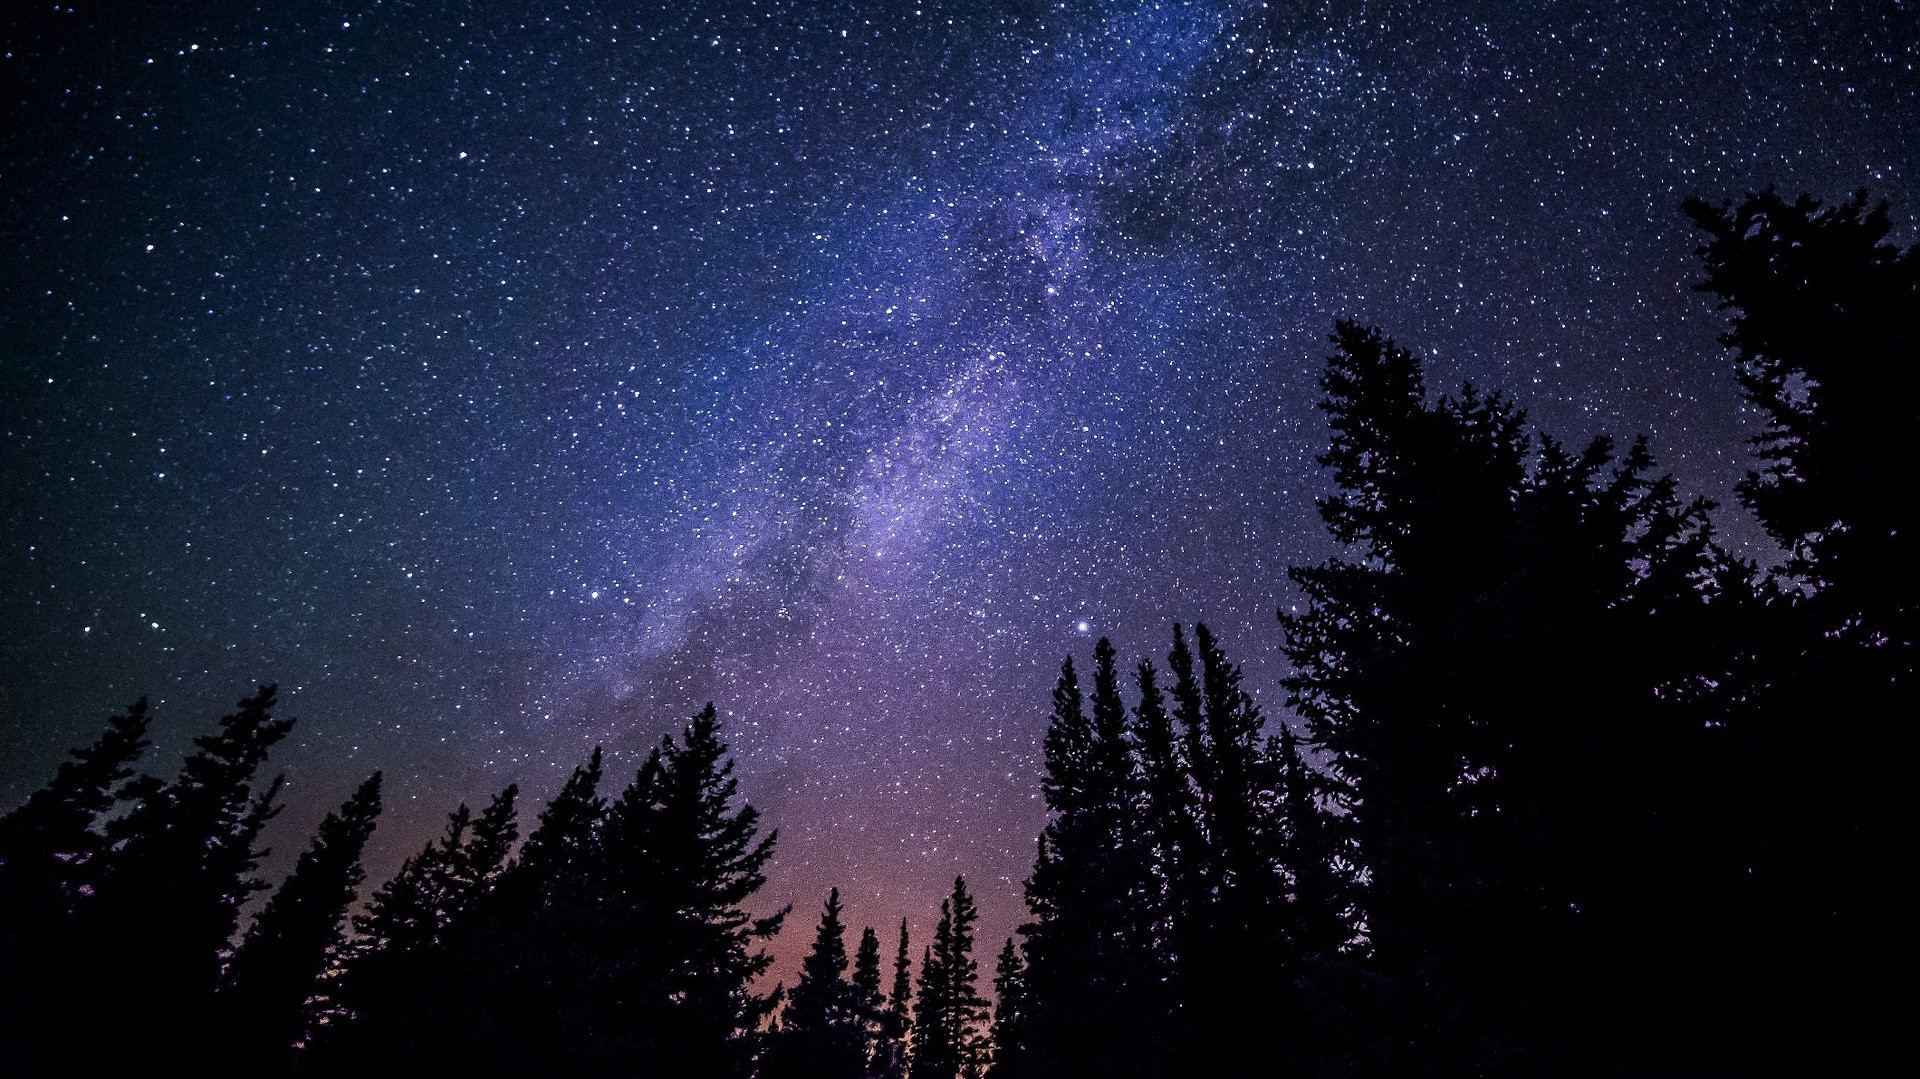 milky-way-984050_1920.jpg